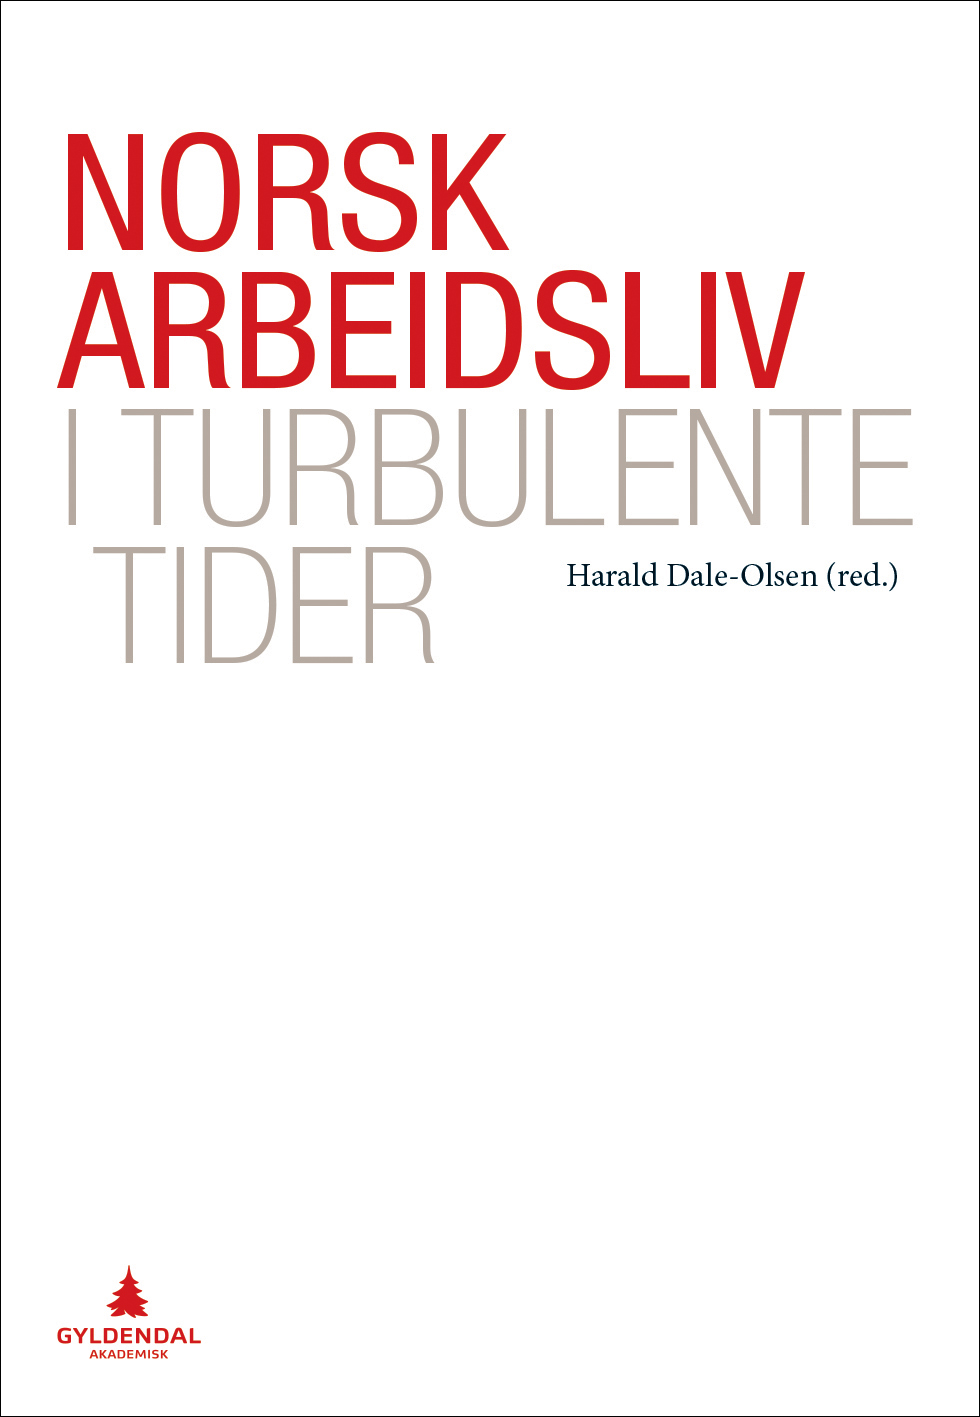 Book launch 4 March: Norwegian working life in tubulent times